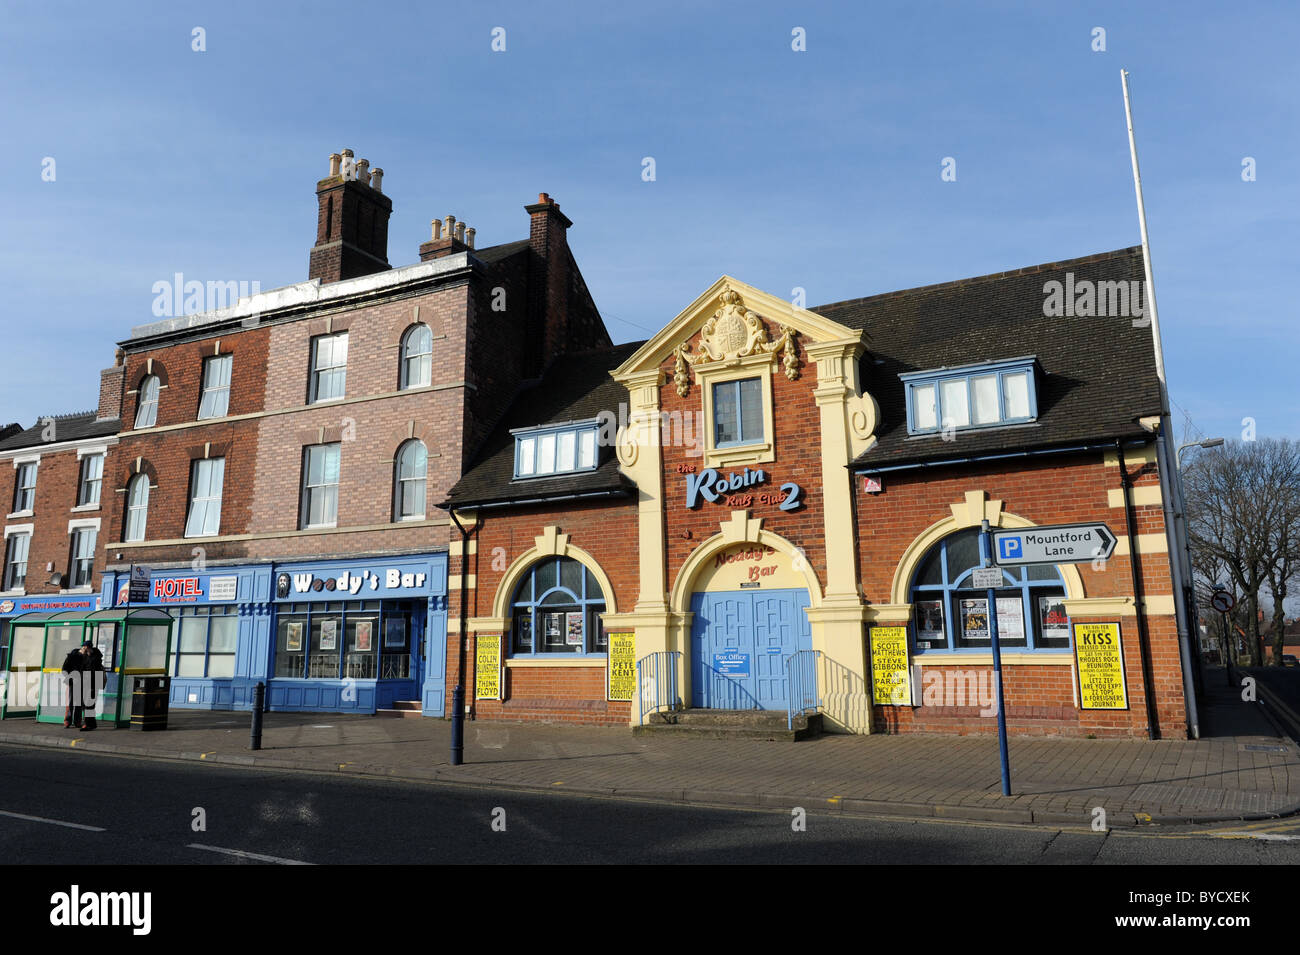 Bilston in the West Midlands England Uk The Robin 2 R&B club - Stock Image